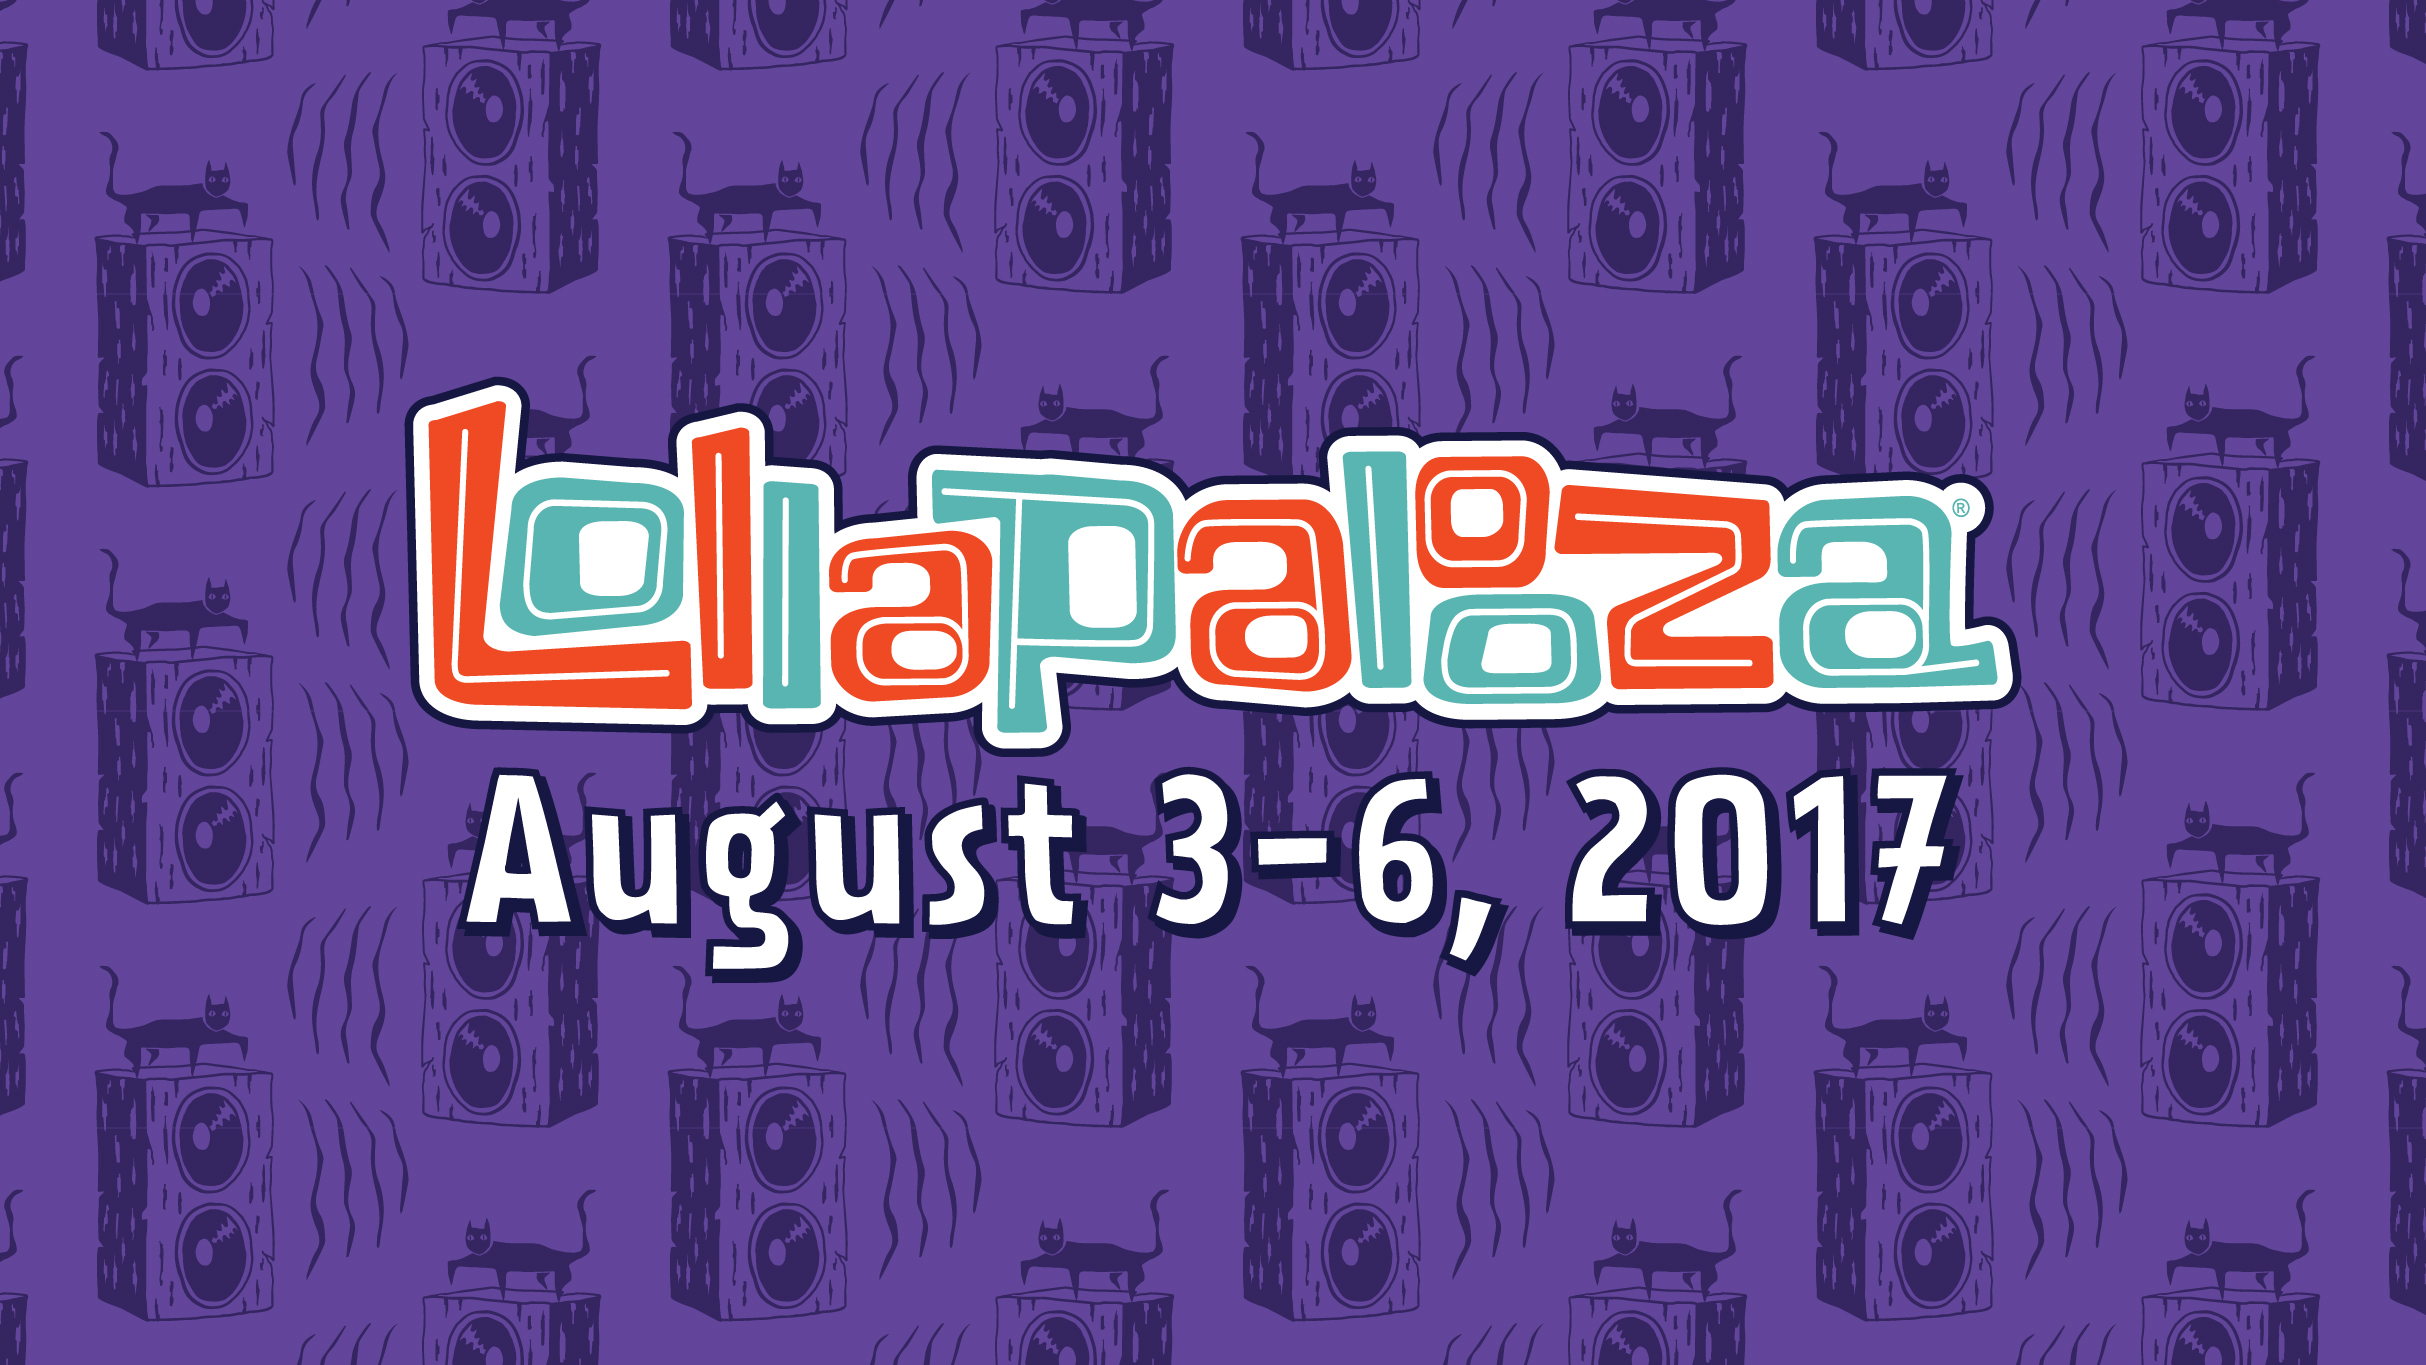 Two 4-day VIP Passes to Lollapalooza